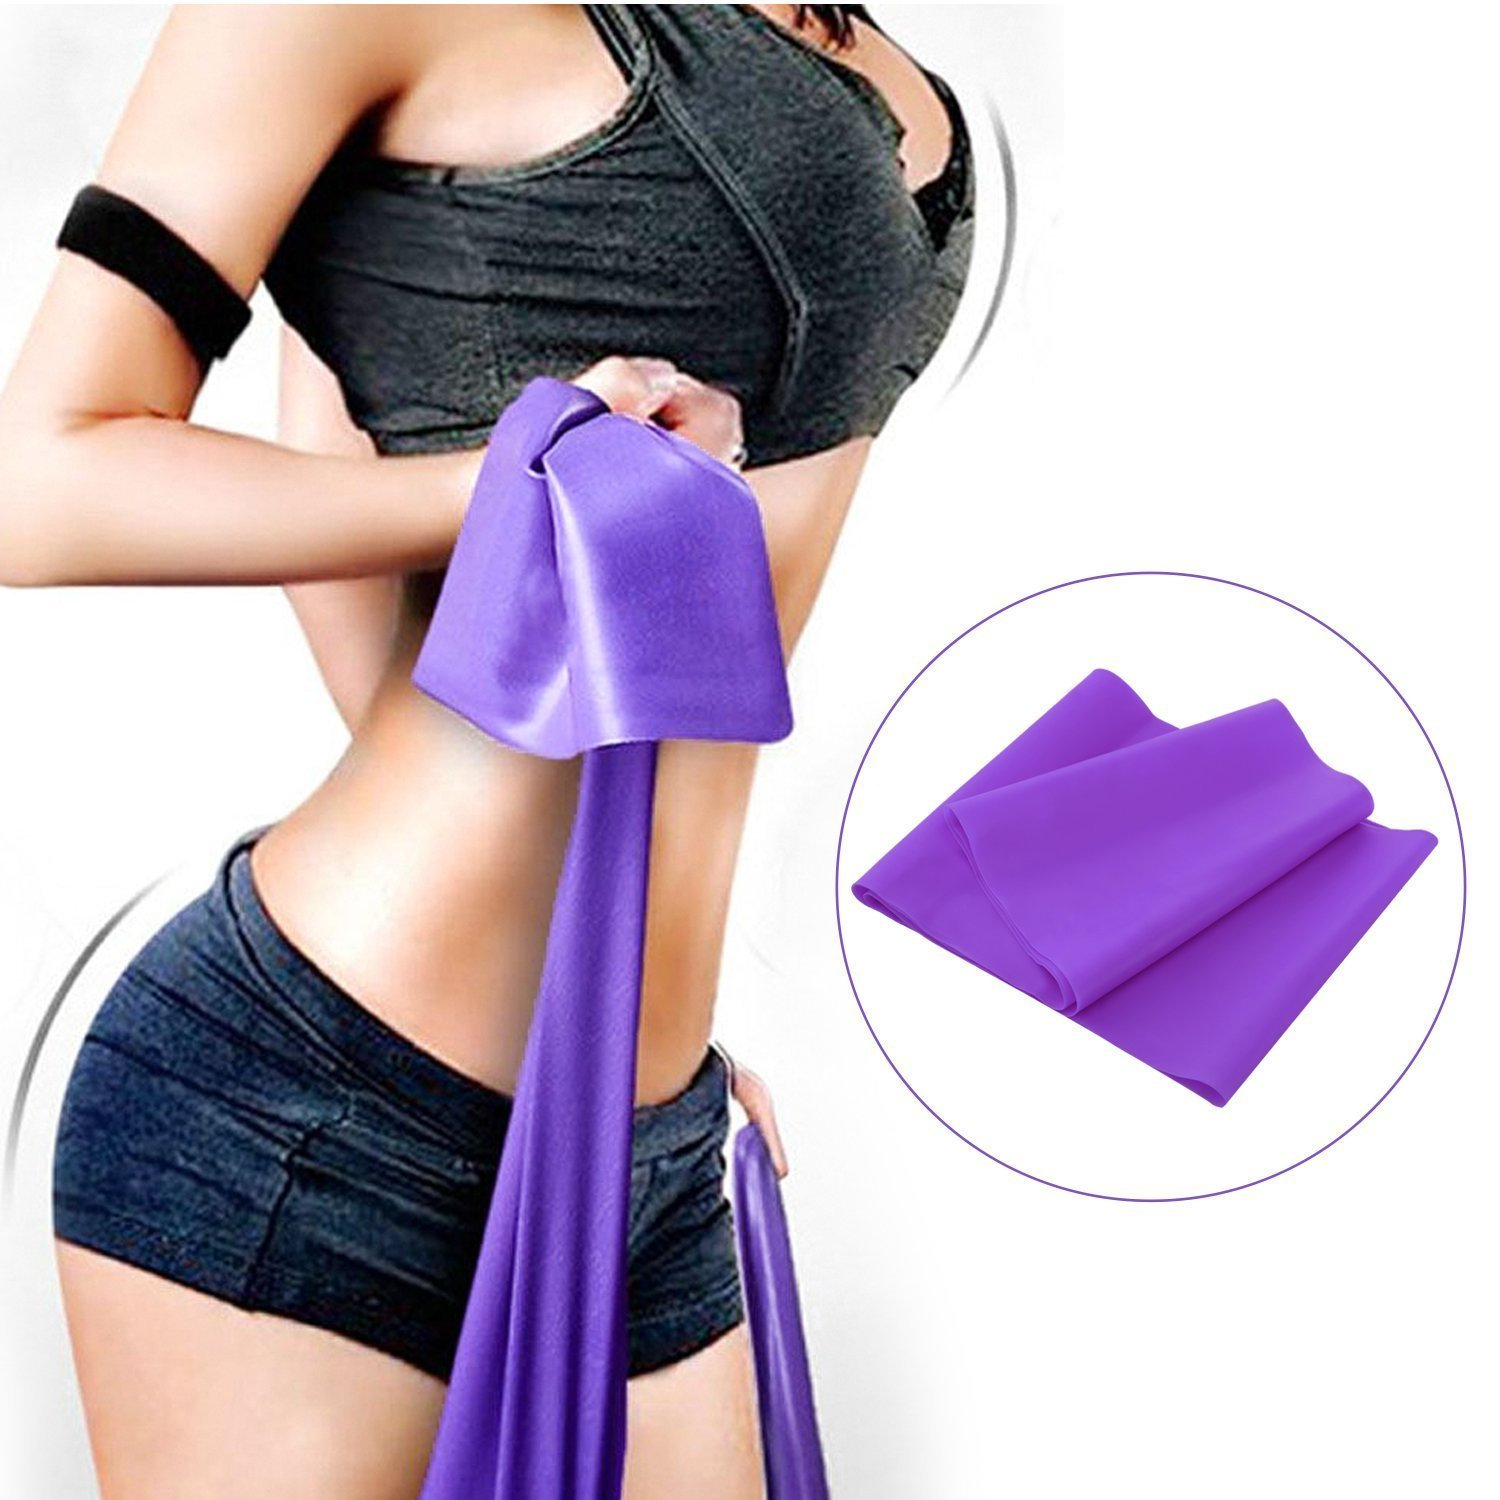 Blue, Green, Purple WERCOMIN 3 Packs Exercise Bands Long Resistance Bands Fitness Elastic Bands Yoga Straps for Physical Therapy Stretch Strength Training